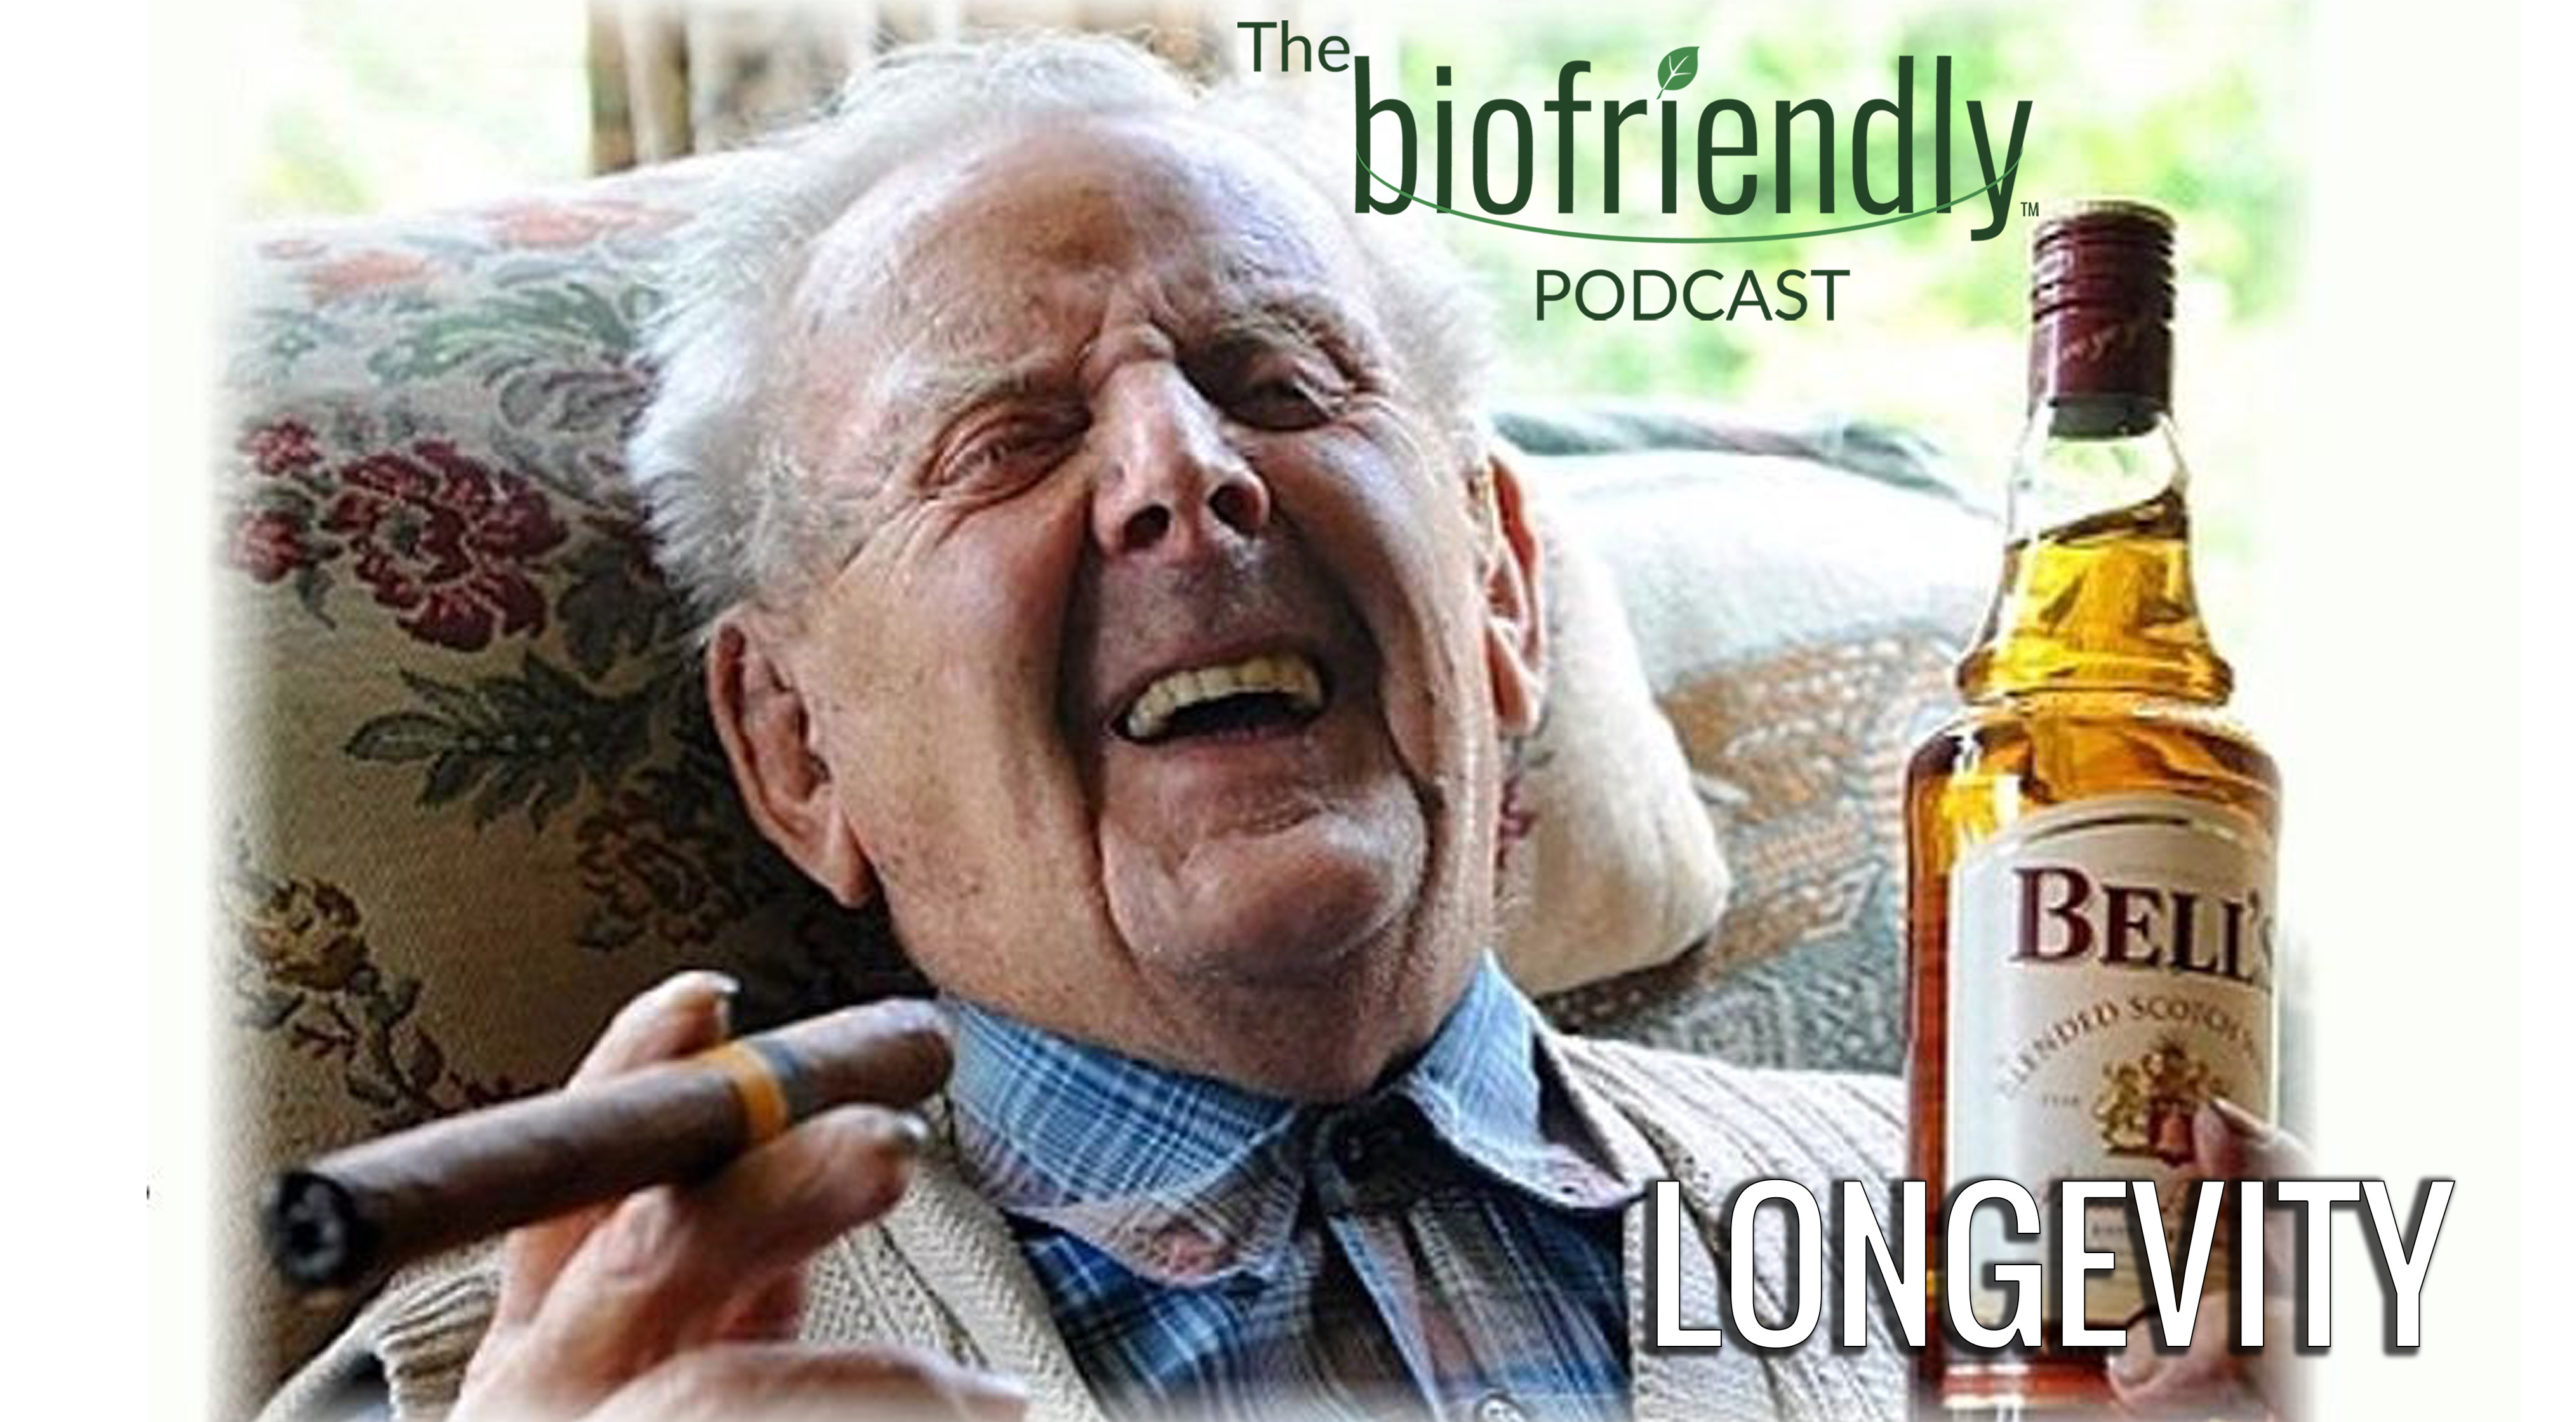 The Biofriendly Podcast - Episode 78 - Longevity